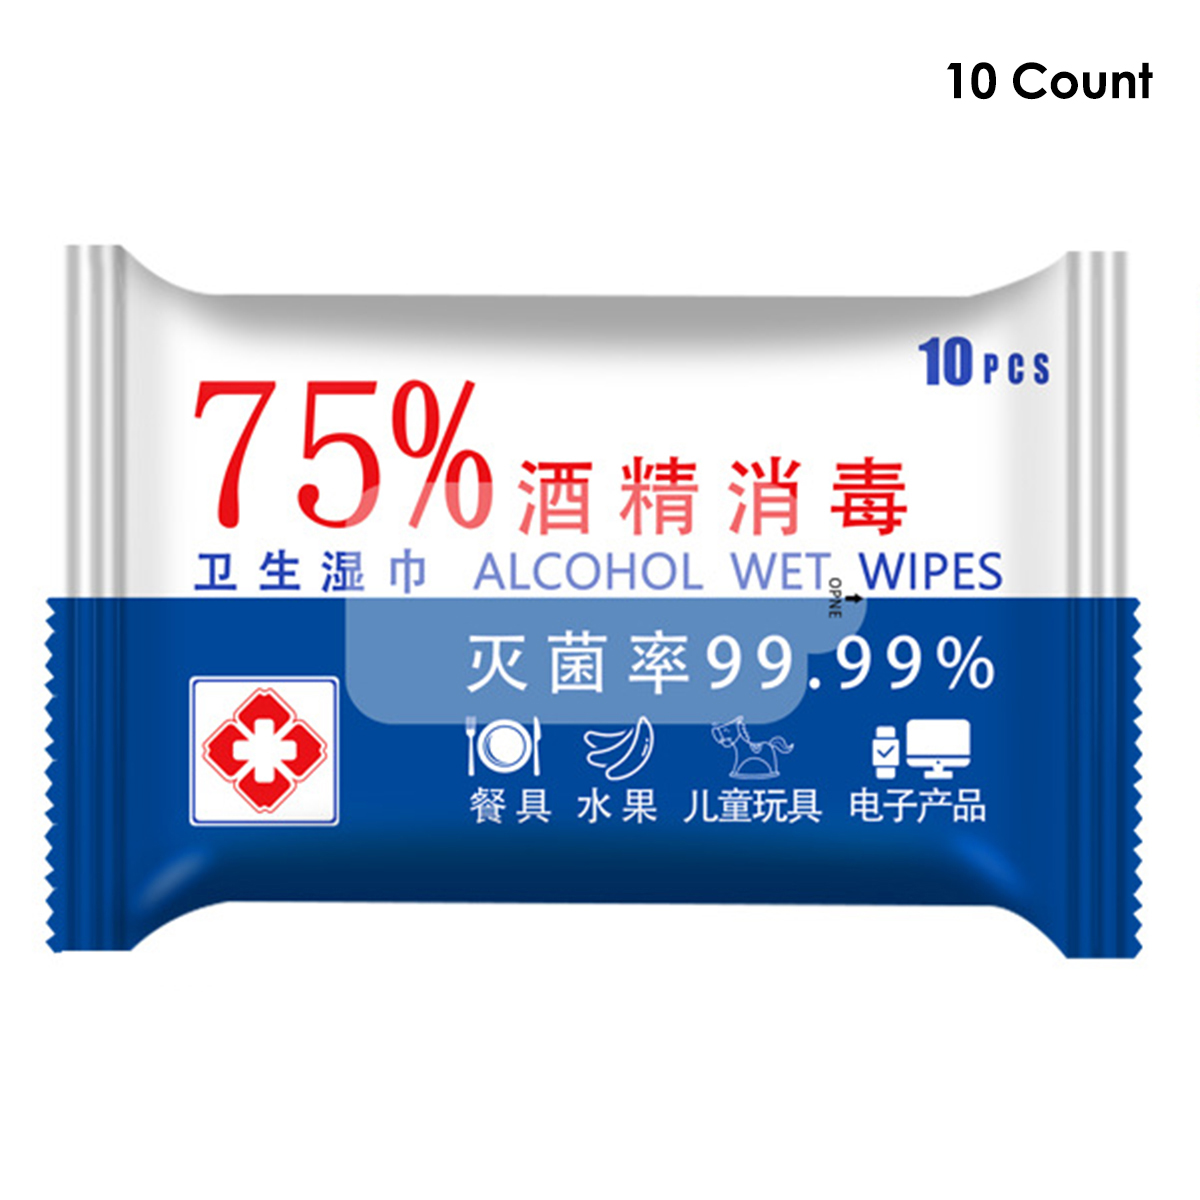 1 Pack Of Alcohol Wet Wipes Anti-Bacteria Mild Cleaning Sterilizing Wipes Non-Wovens Hands Wipes​​ Sterilize Disinfection